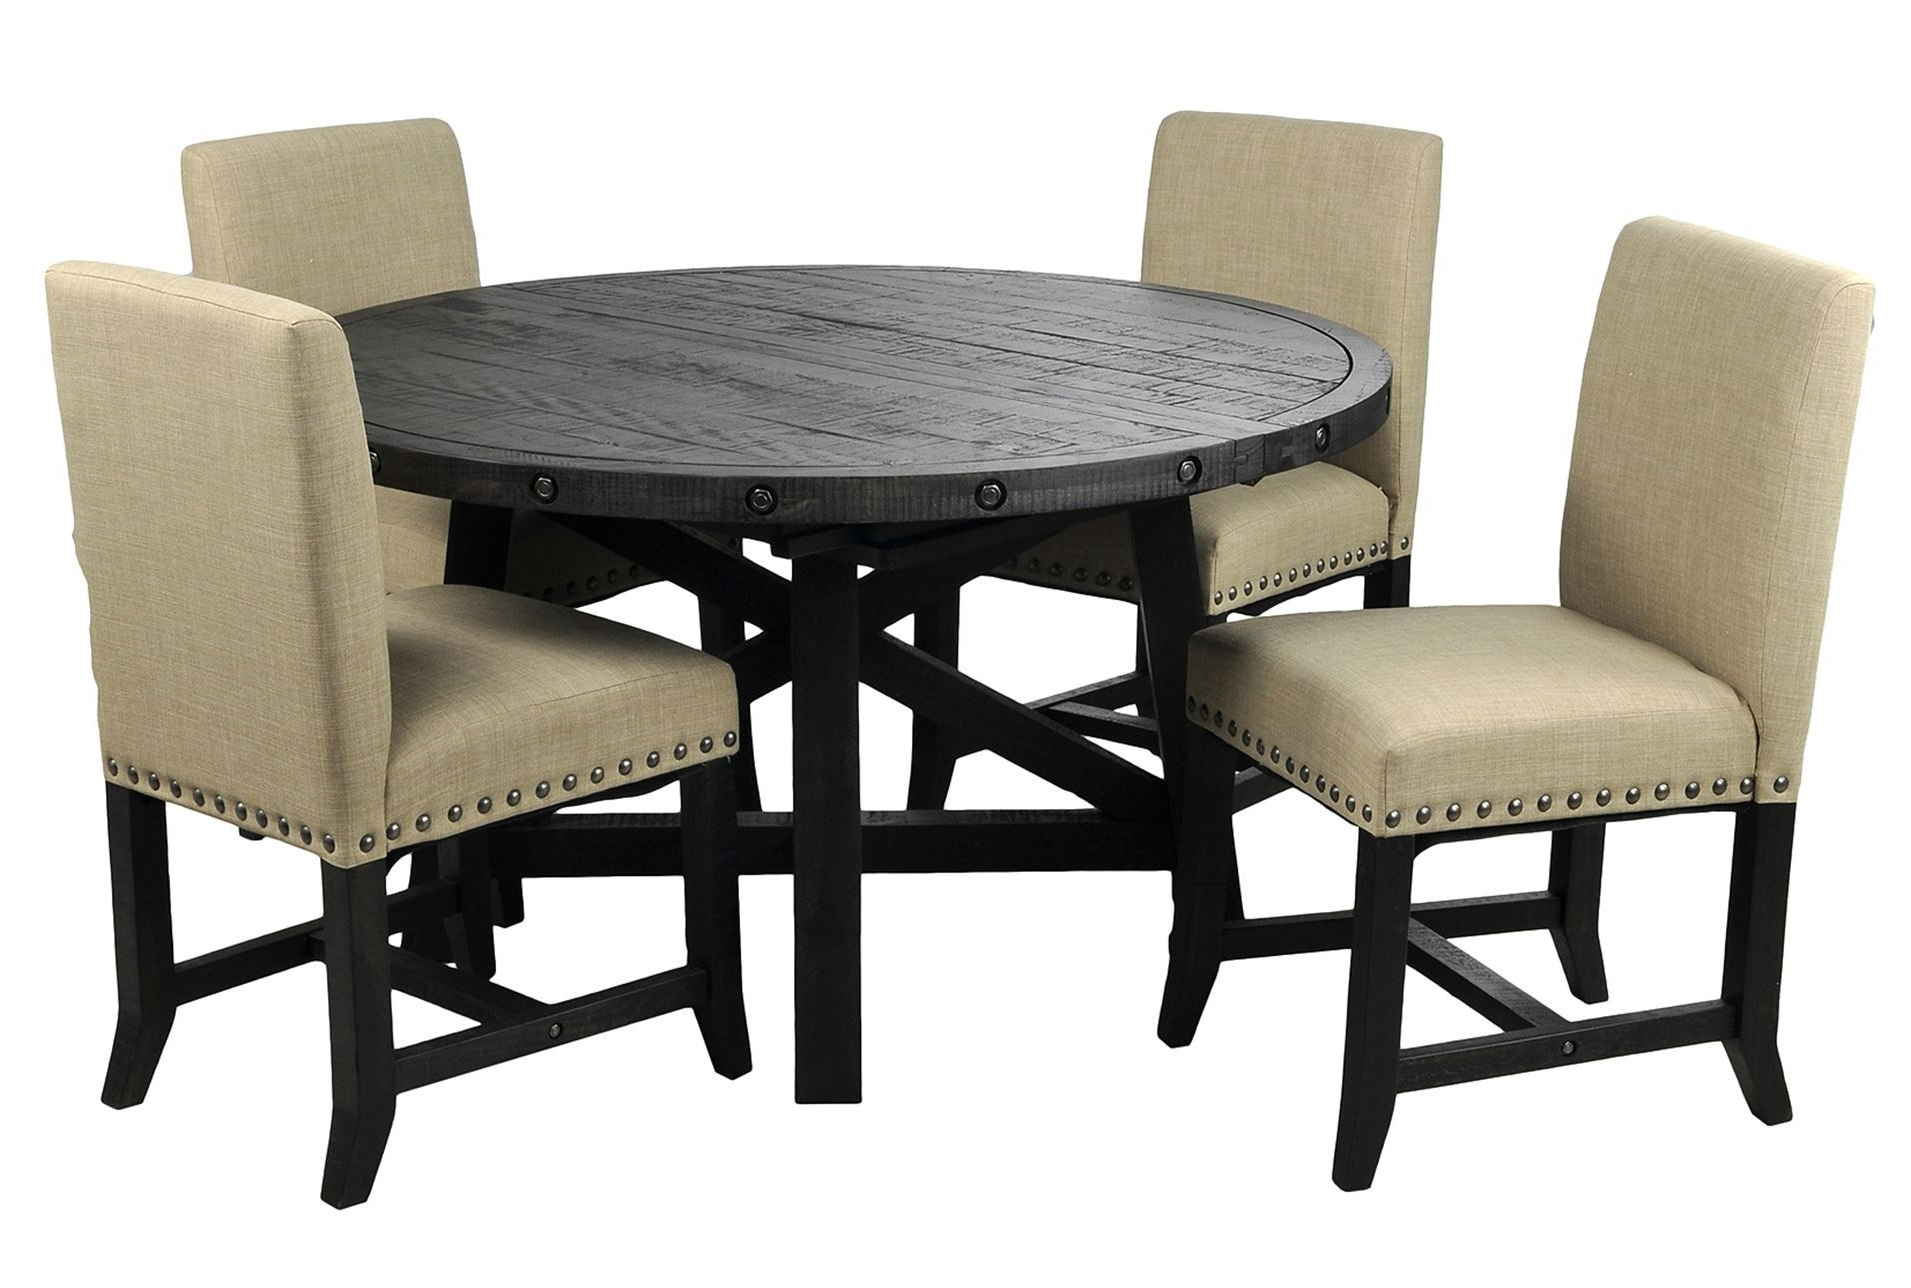 Preferred Jaxon 7 Piece Rectangle Dining Sets With Upholstered Chairs Regarding Jaxon 5 Piece Round Dining Set Wupholstered Chairs Dining Set With (Gallery 5 of 25)